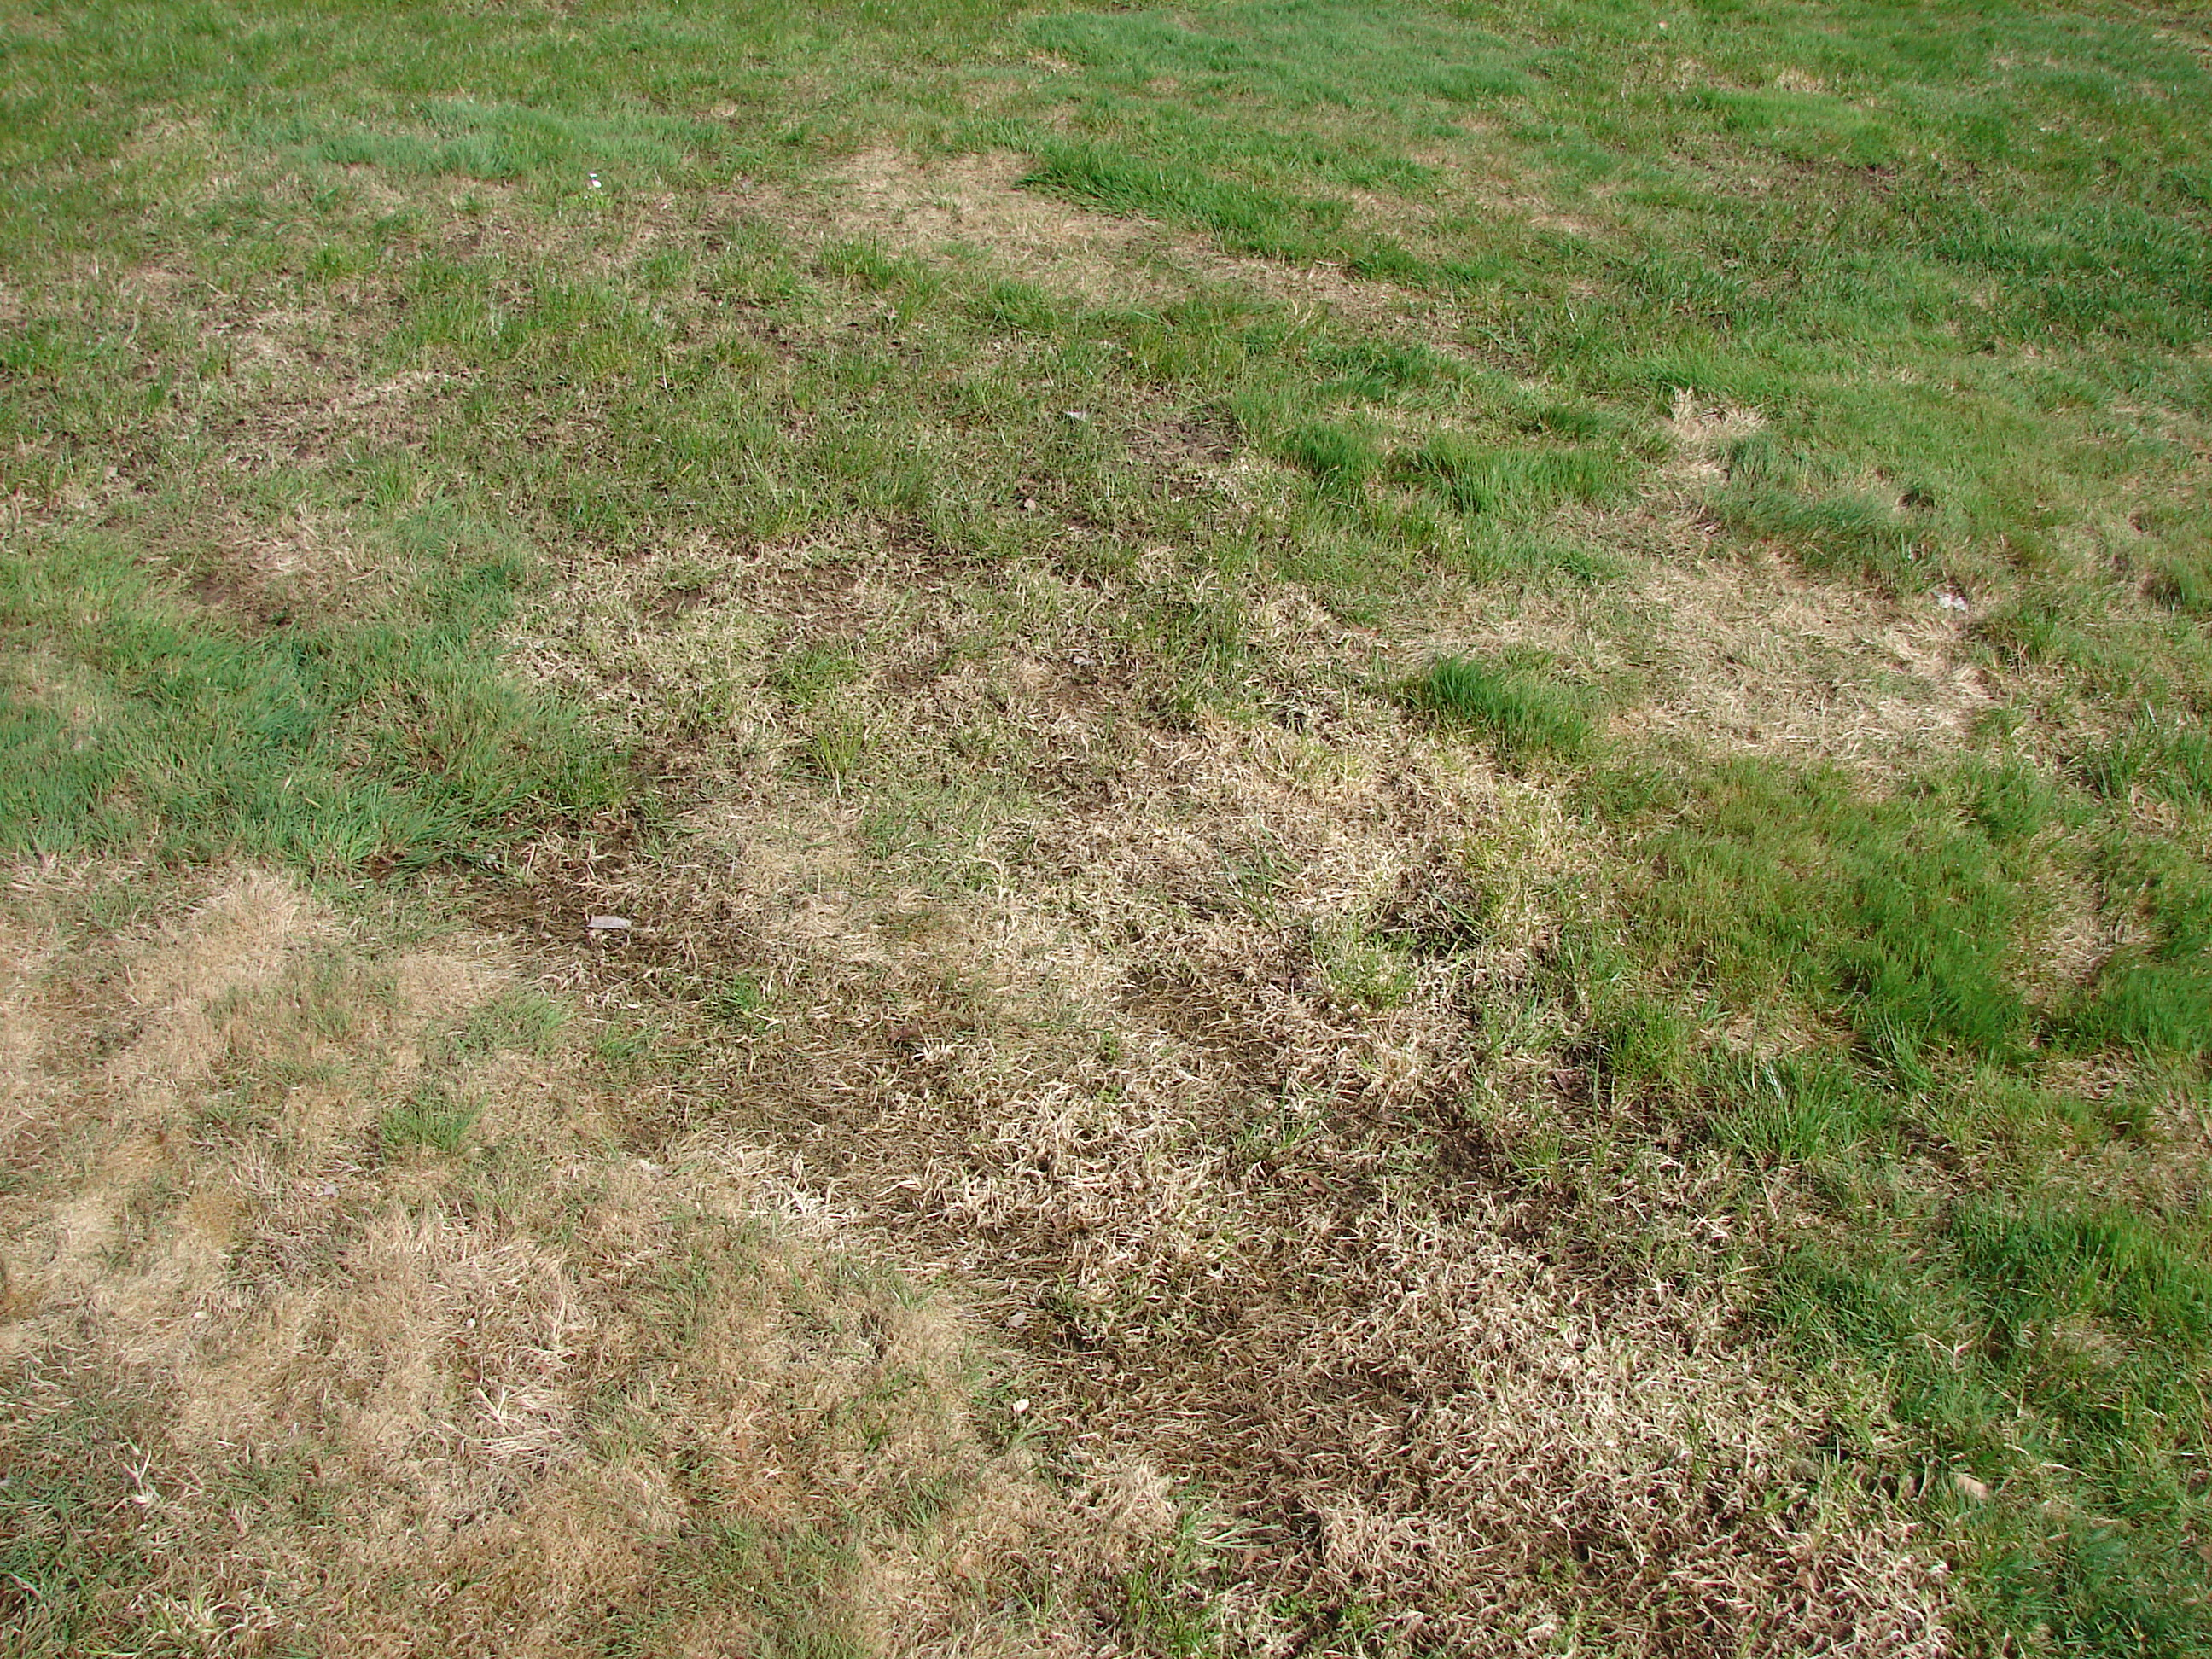 Thinning grass with brown, bare patches